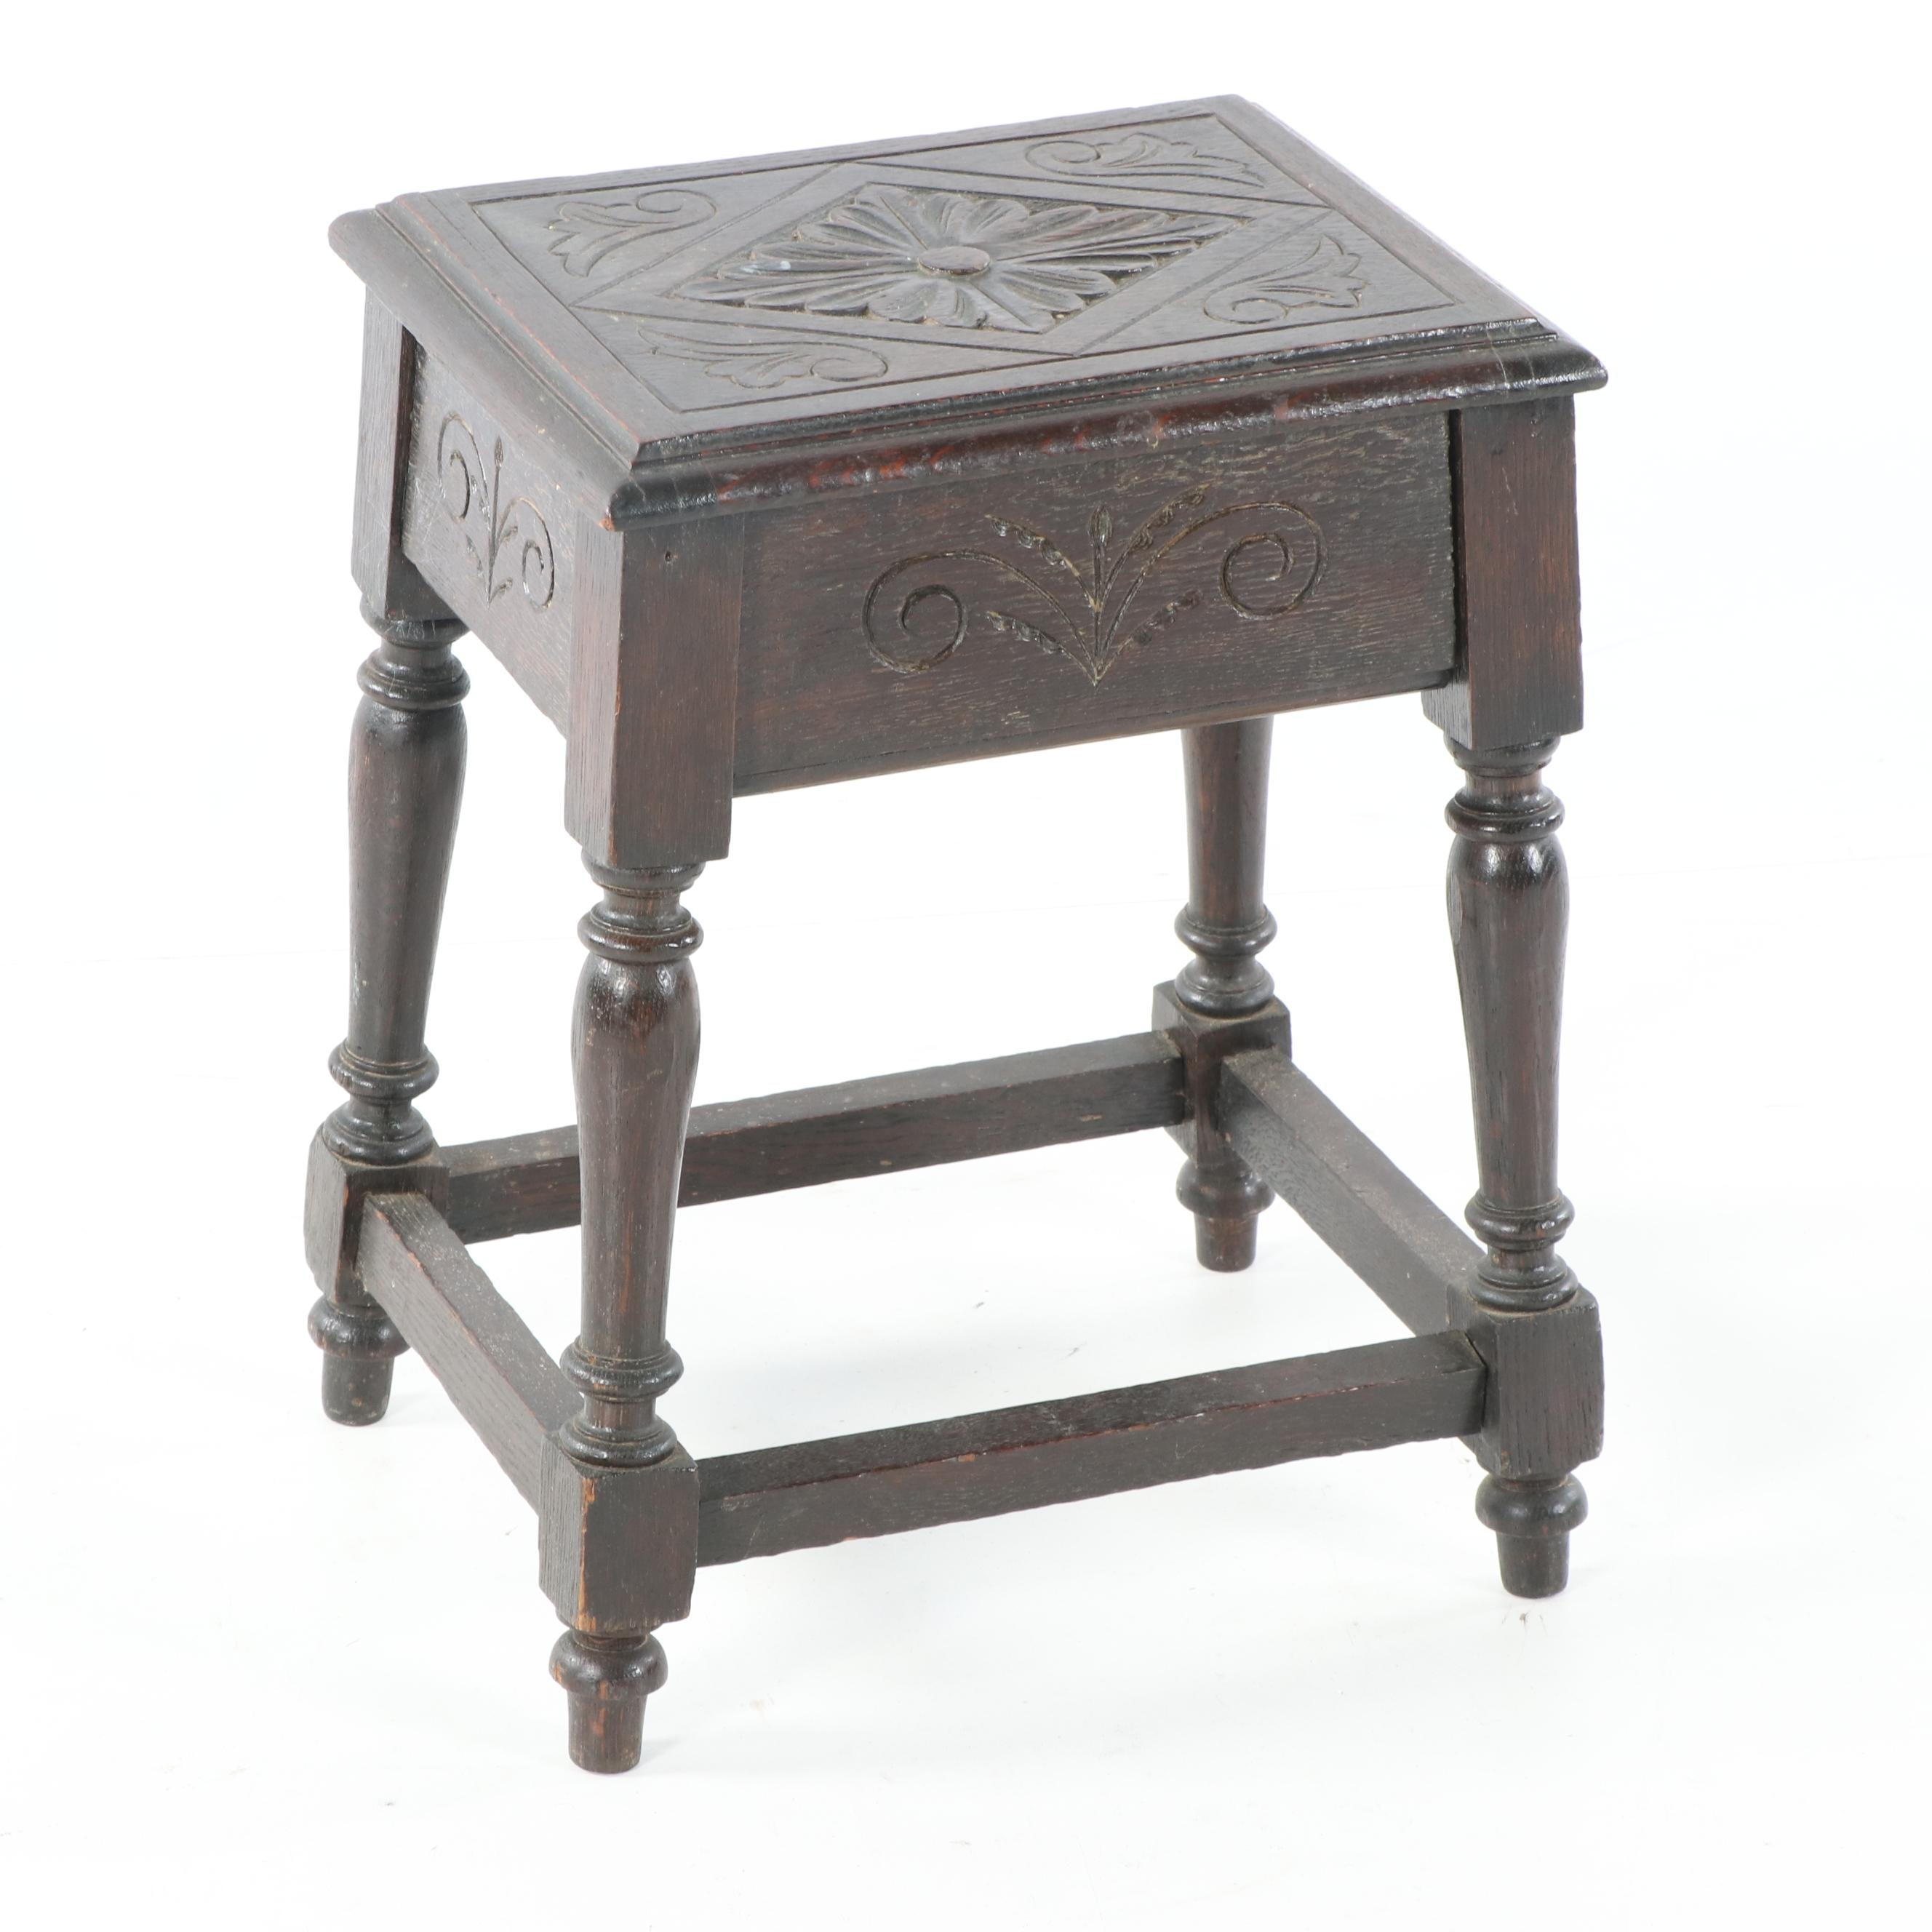 Jacobean Revival Style Carved Wood Storage Side Table, Early 20th Century